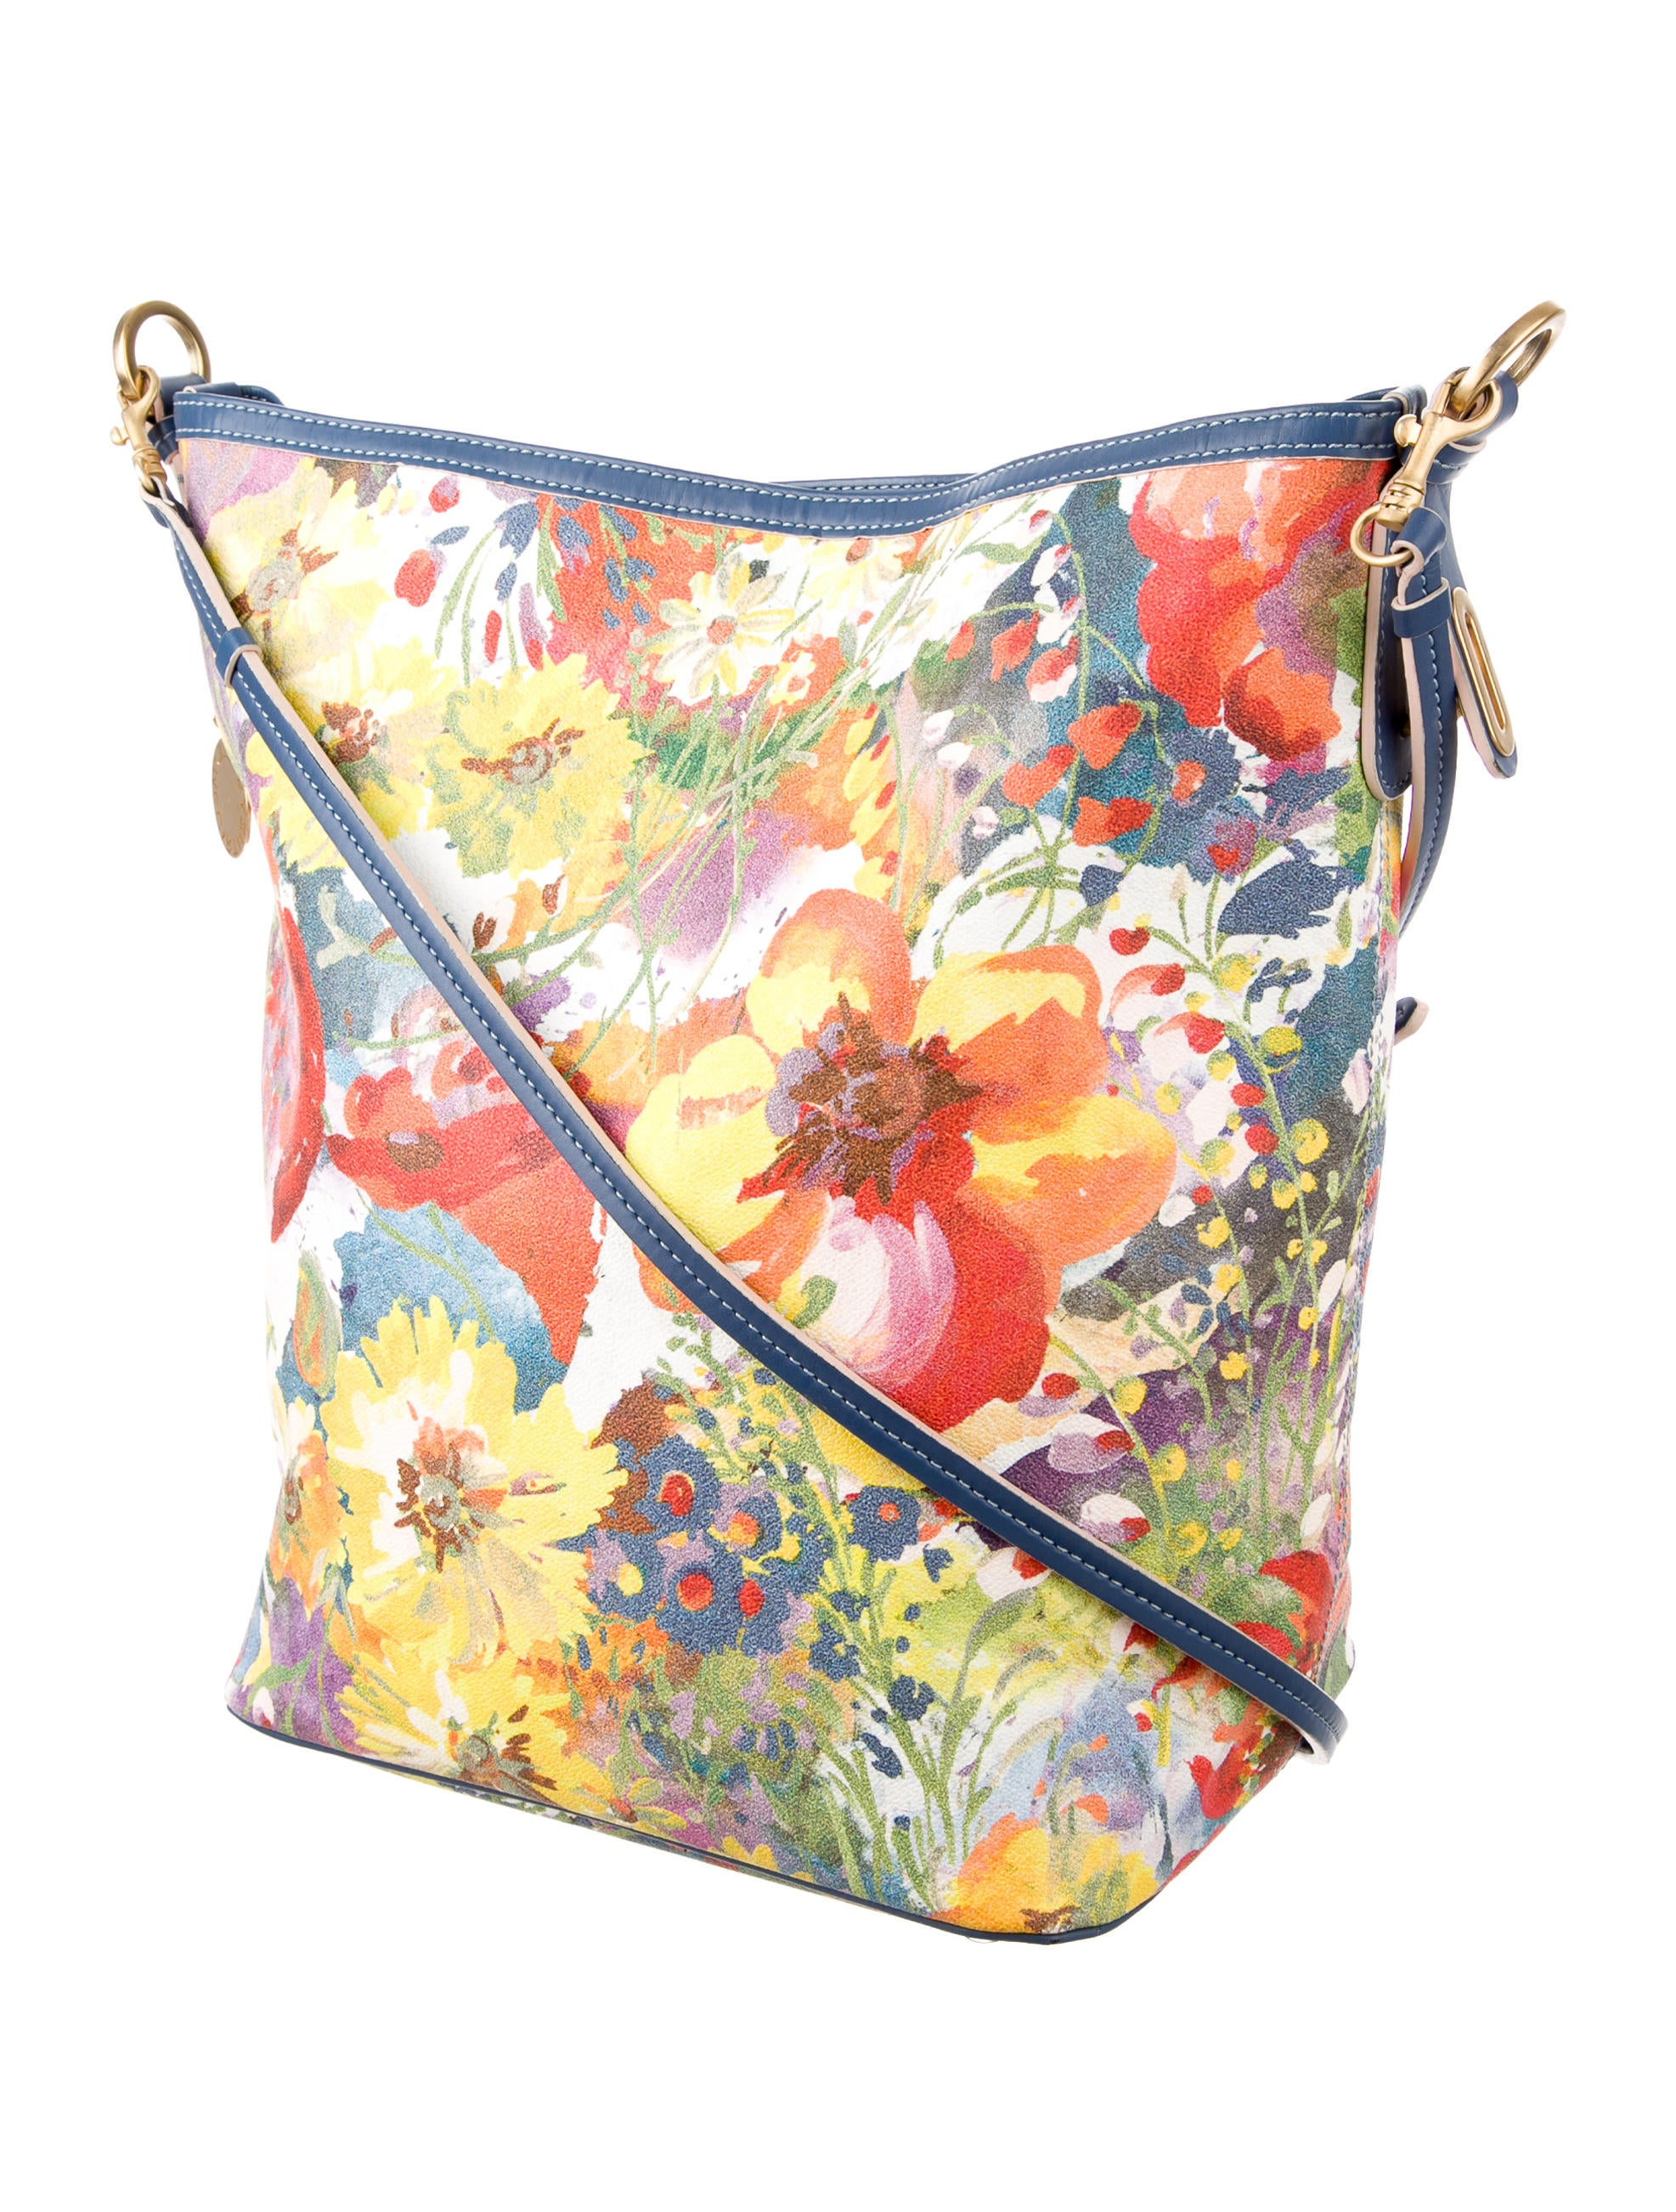 Stella McCartney Floral Print Vegan Leather Crossbody Bag - Handbags - STL48005 | The RealReal